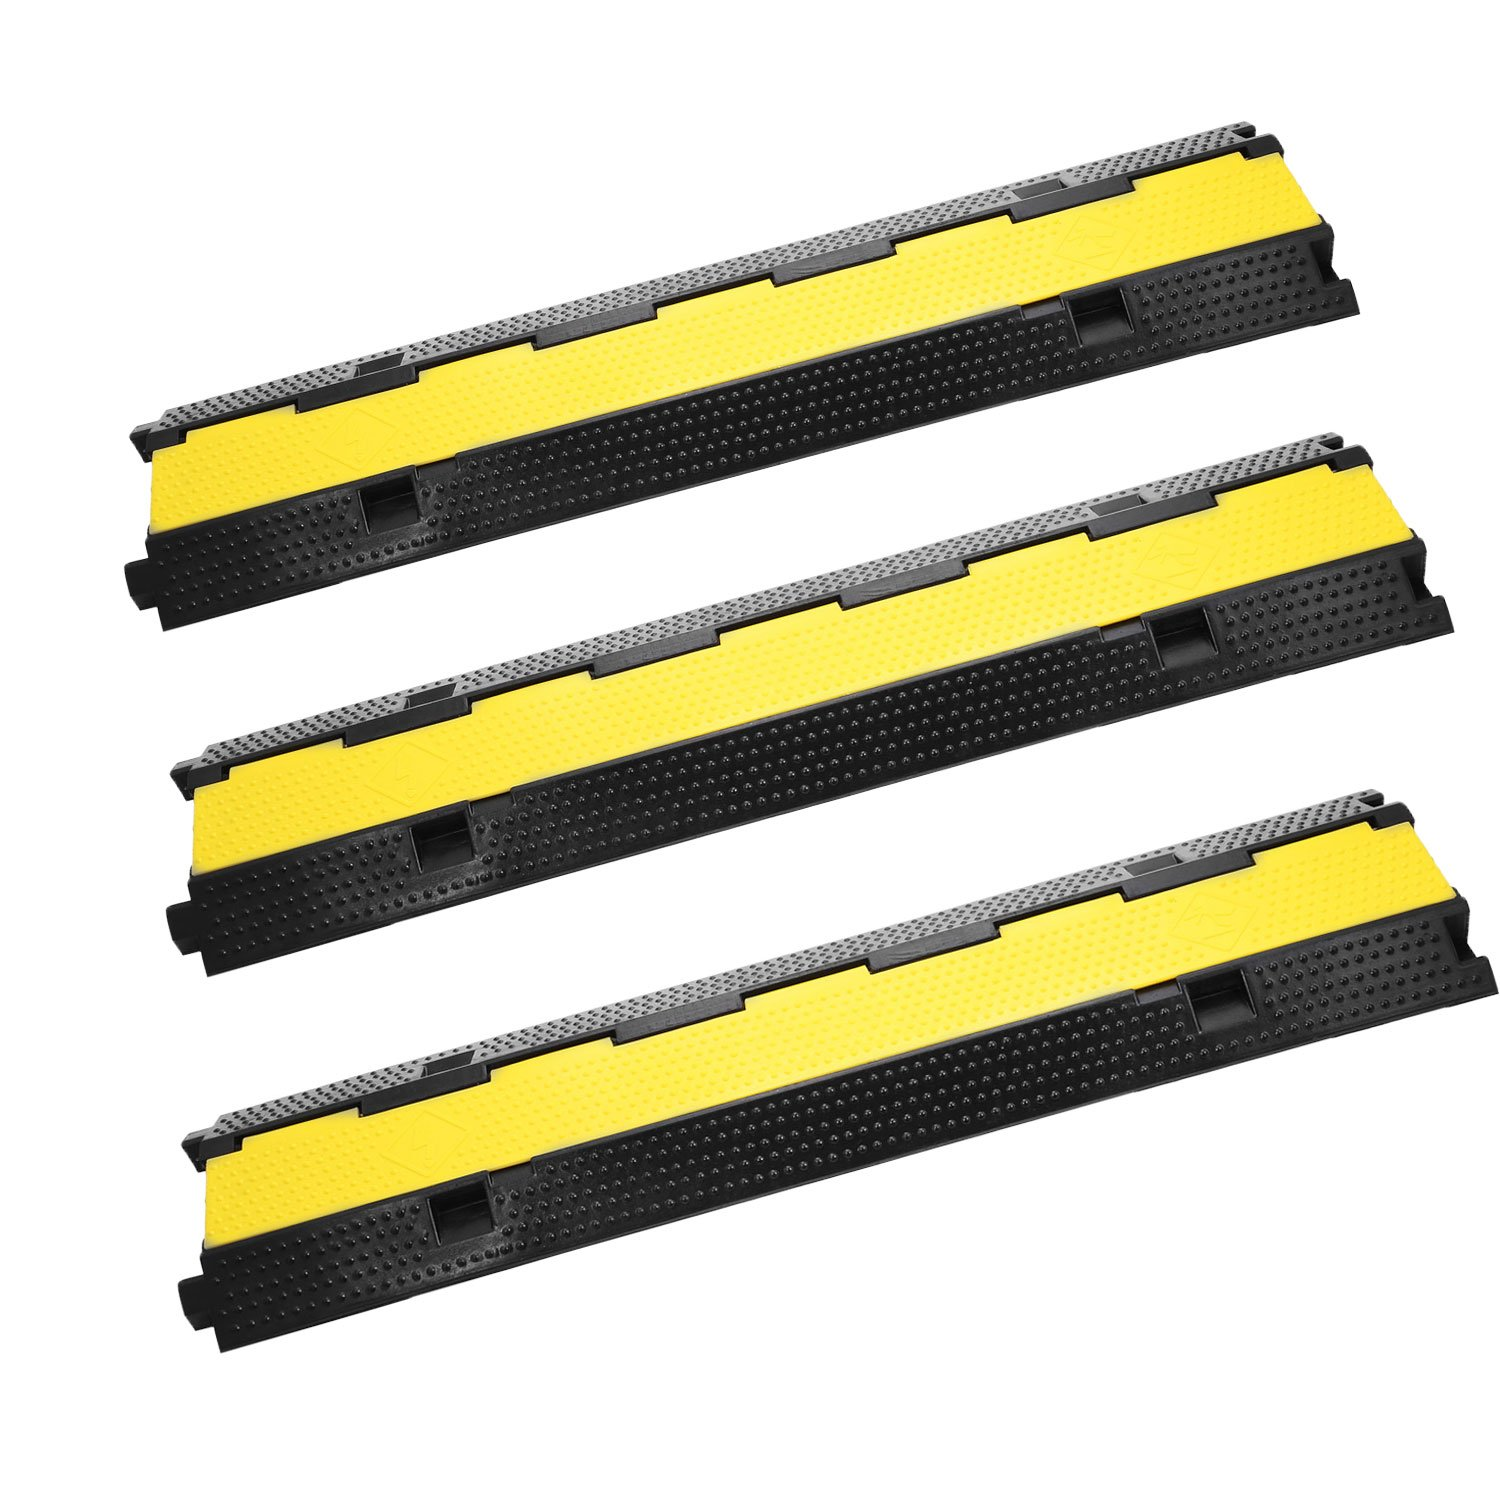 OrangeA 3 Pack Channel Rubber Cable Protector 2 Channel Speed Bump 11000lbs Capacity Rubber Speed Bump Cable Protector Ramp